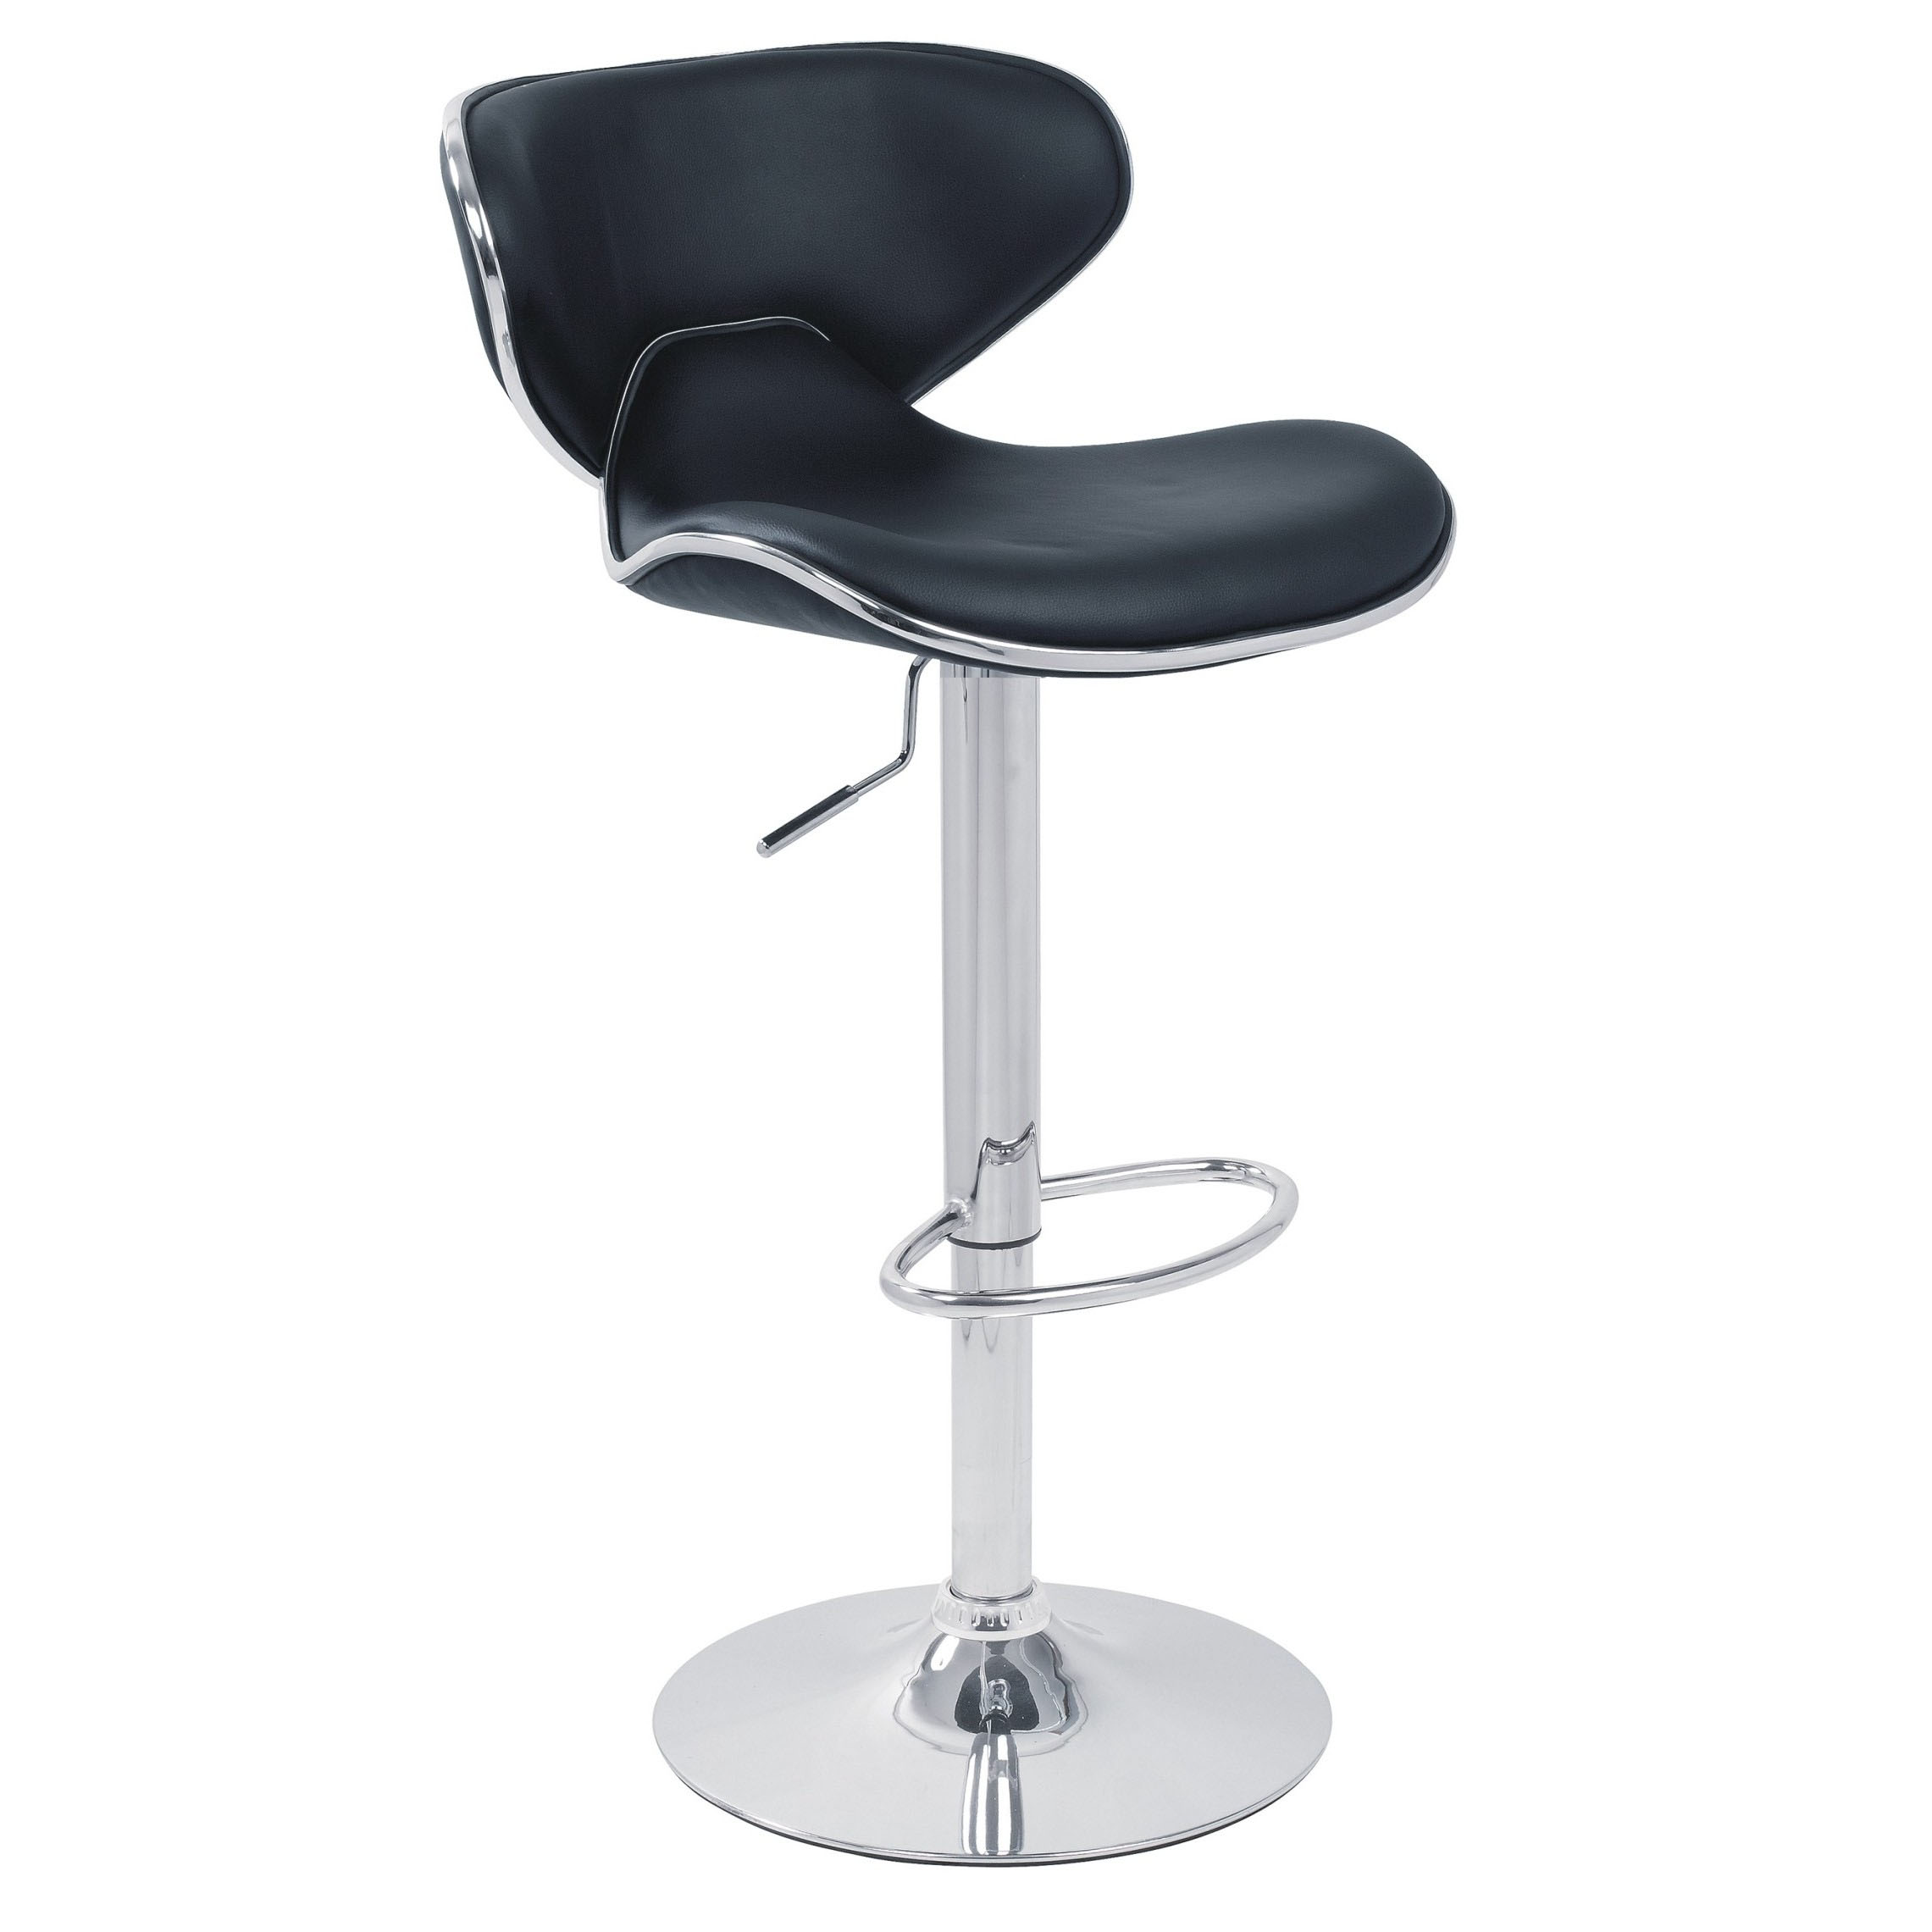 Carcaso Bar Stool - Black